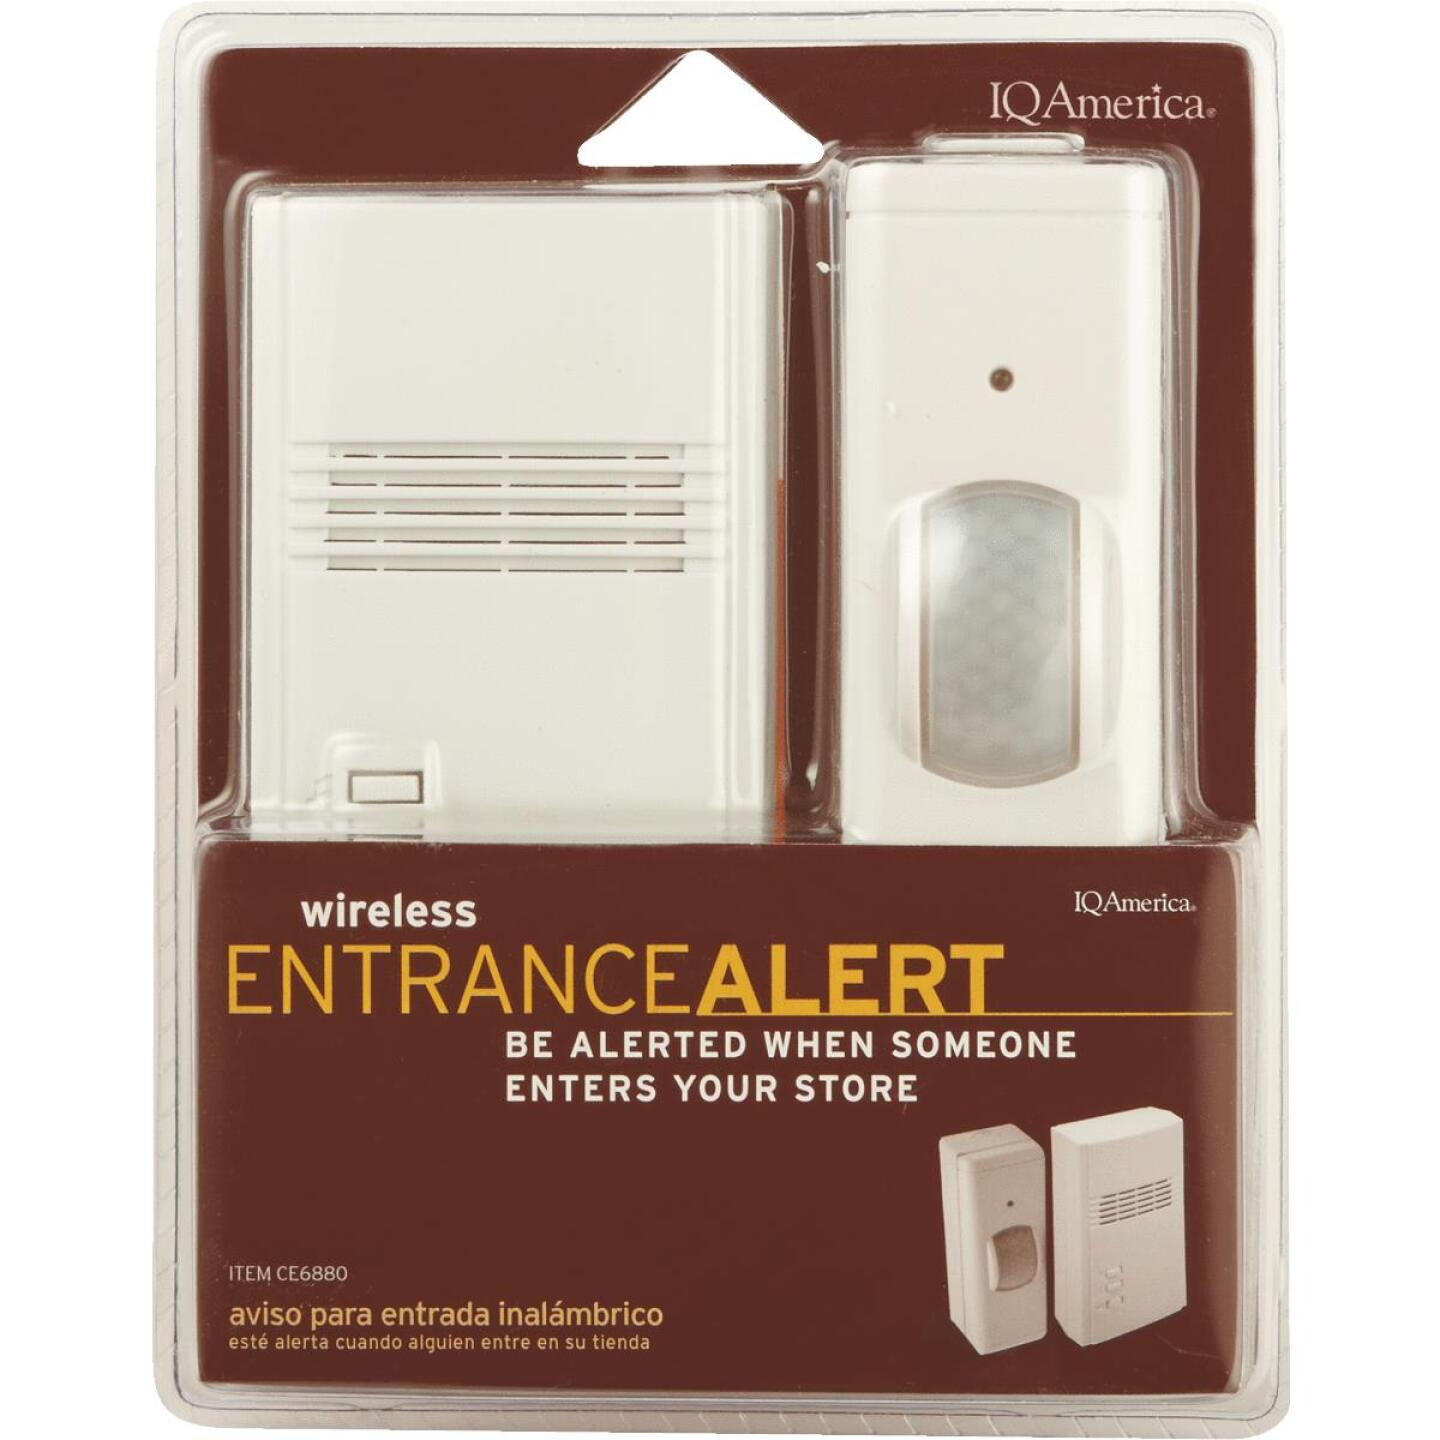 IQ America Motion Activated Entrance Alert Wireless Off-White Wireless Door Chime Image 2